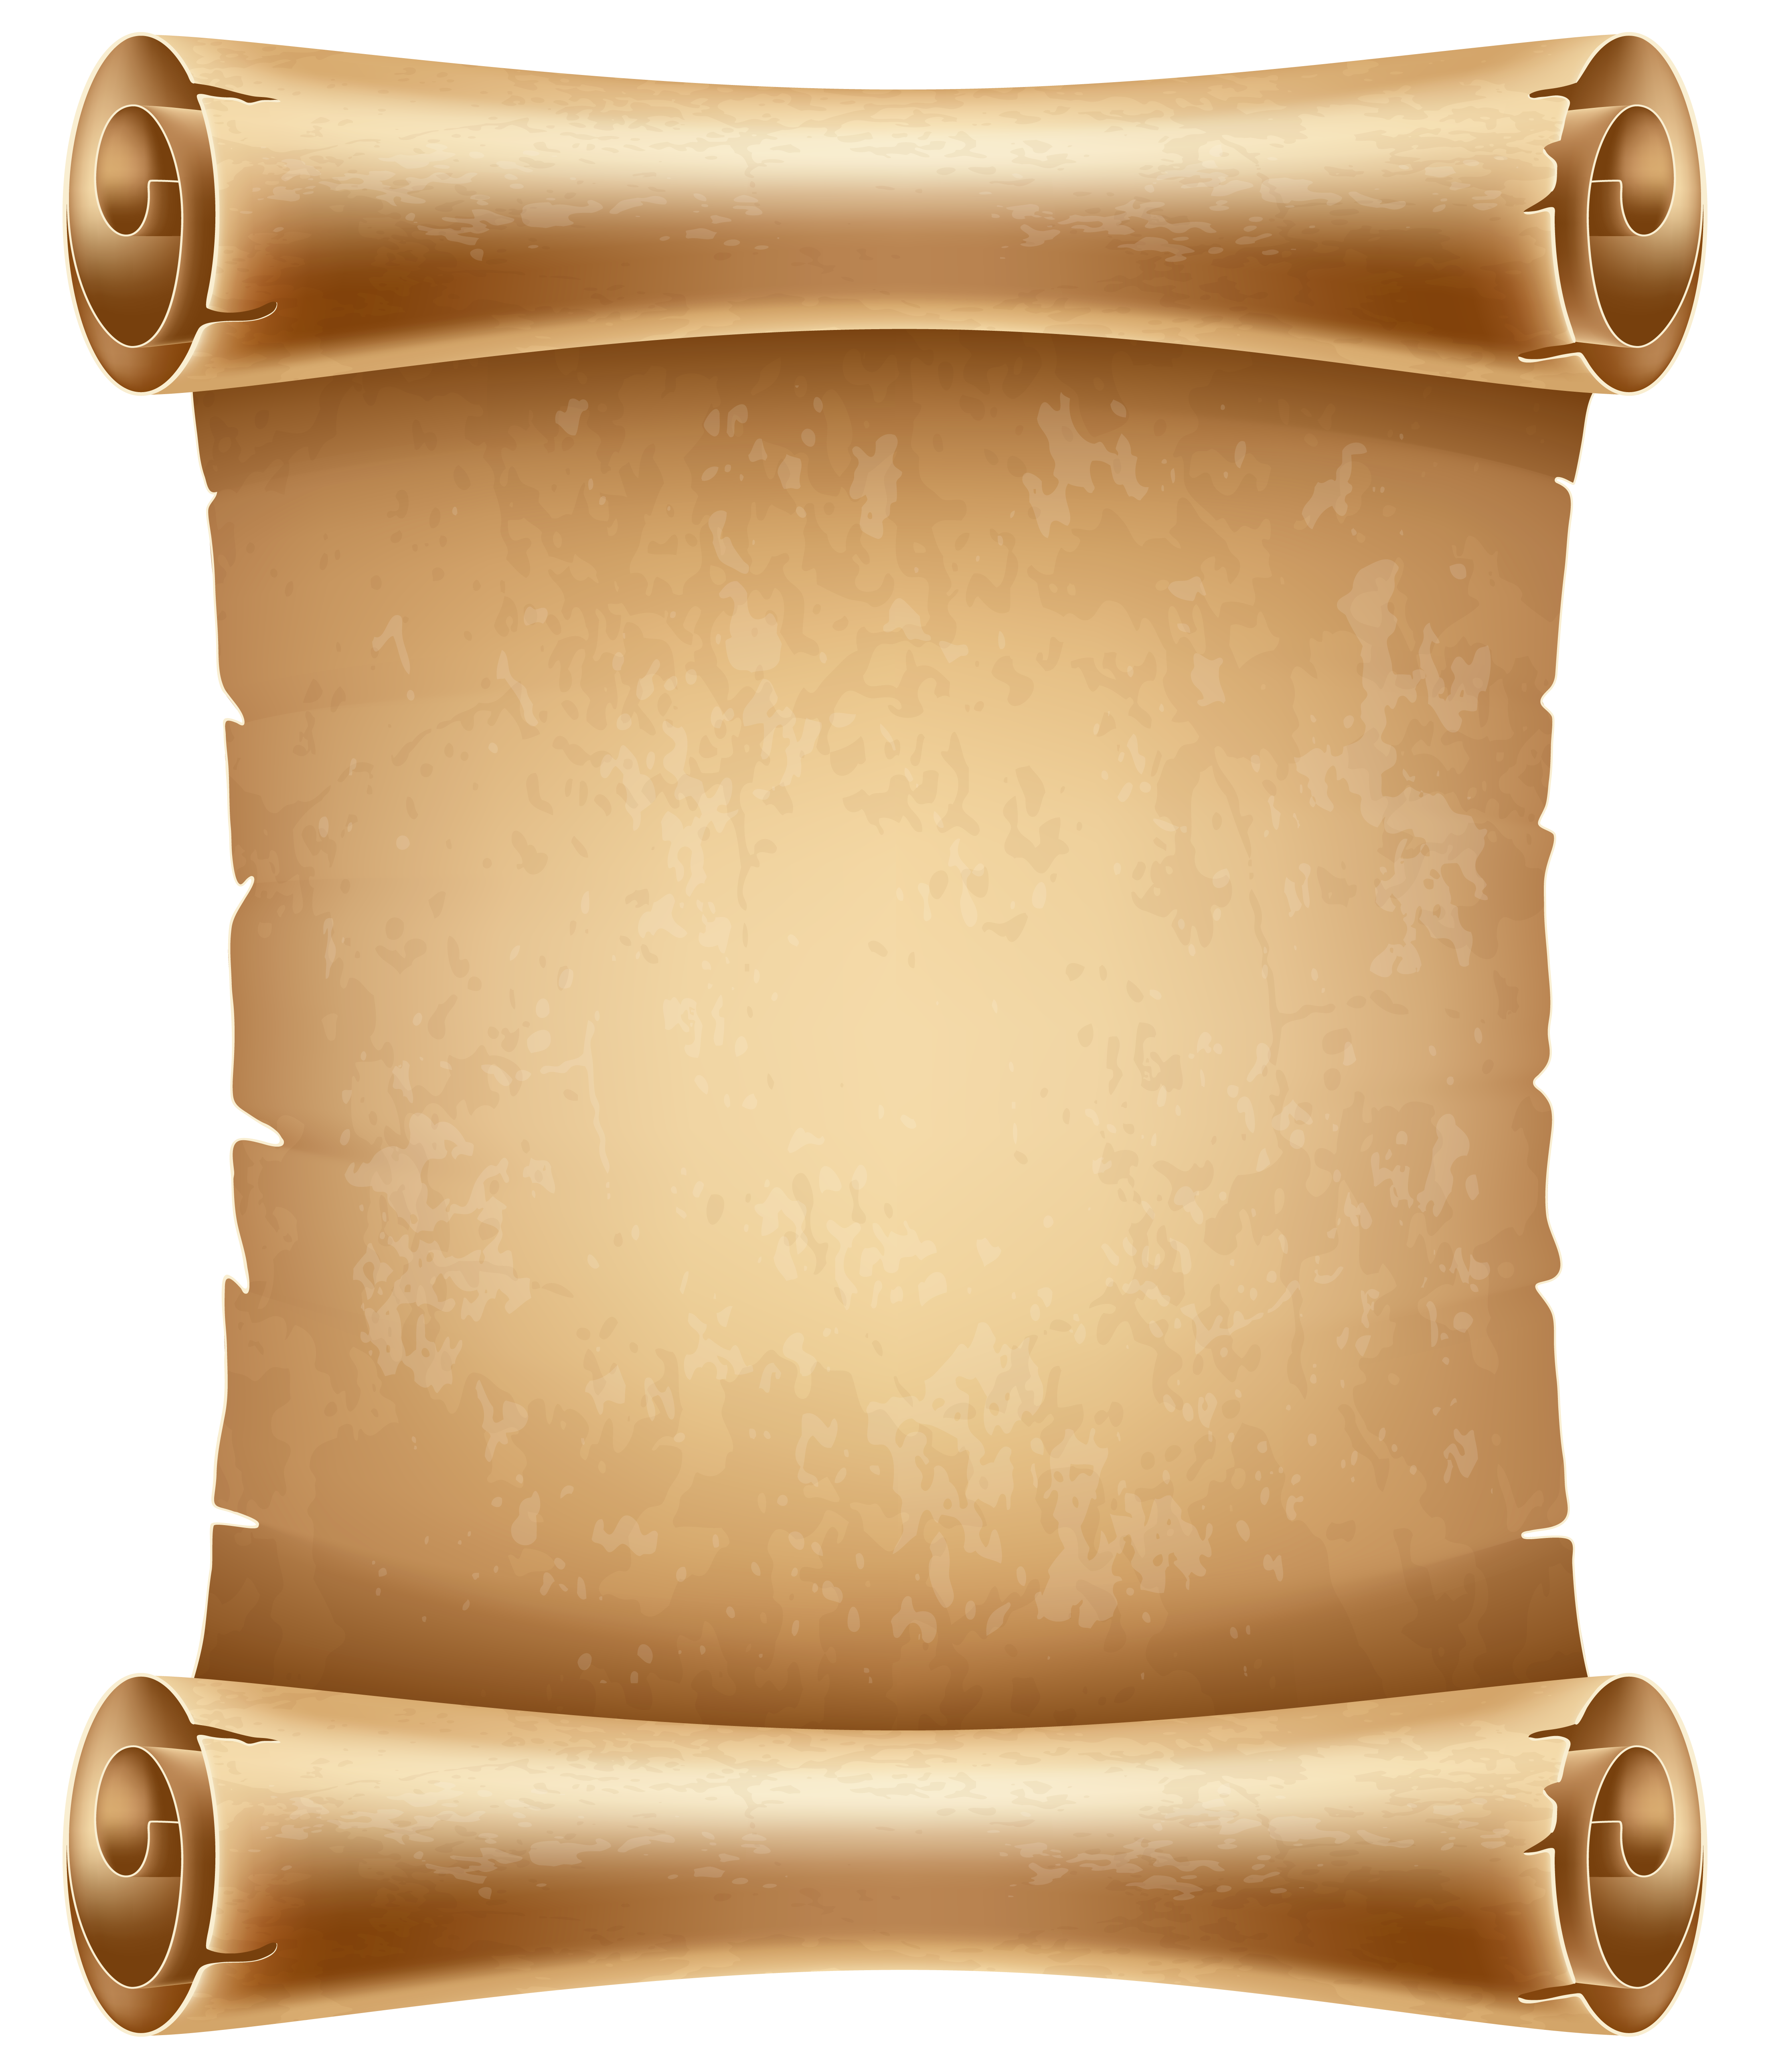 Old paper scroll png. Scrolled clipart image gallery